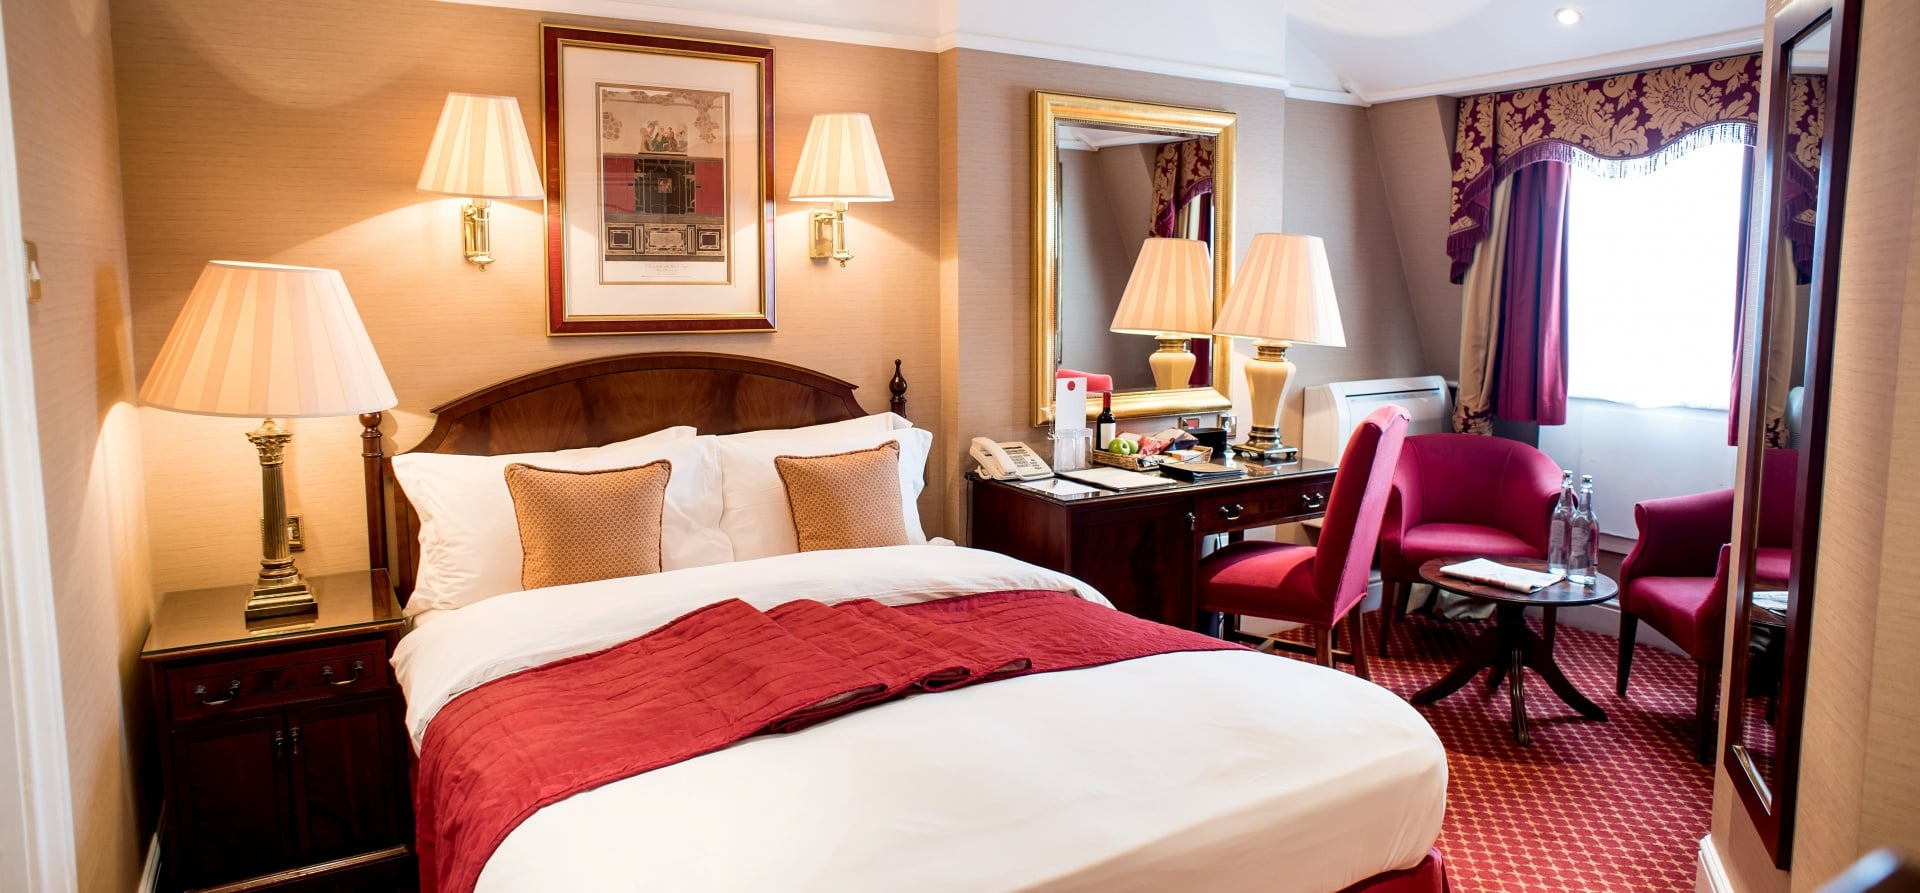 Overnight Break For Two At The Colonnade Hotel, London - With Dinner-6